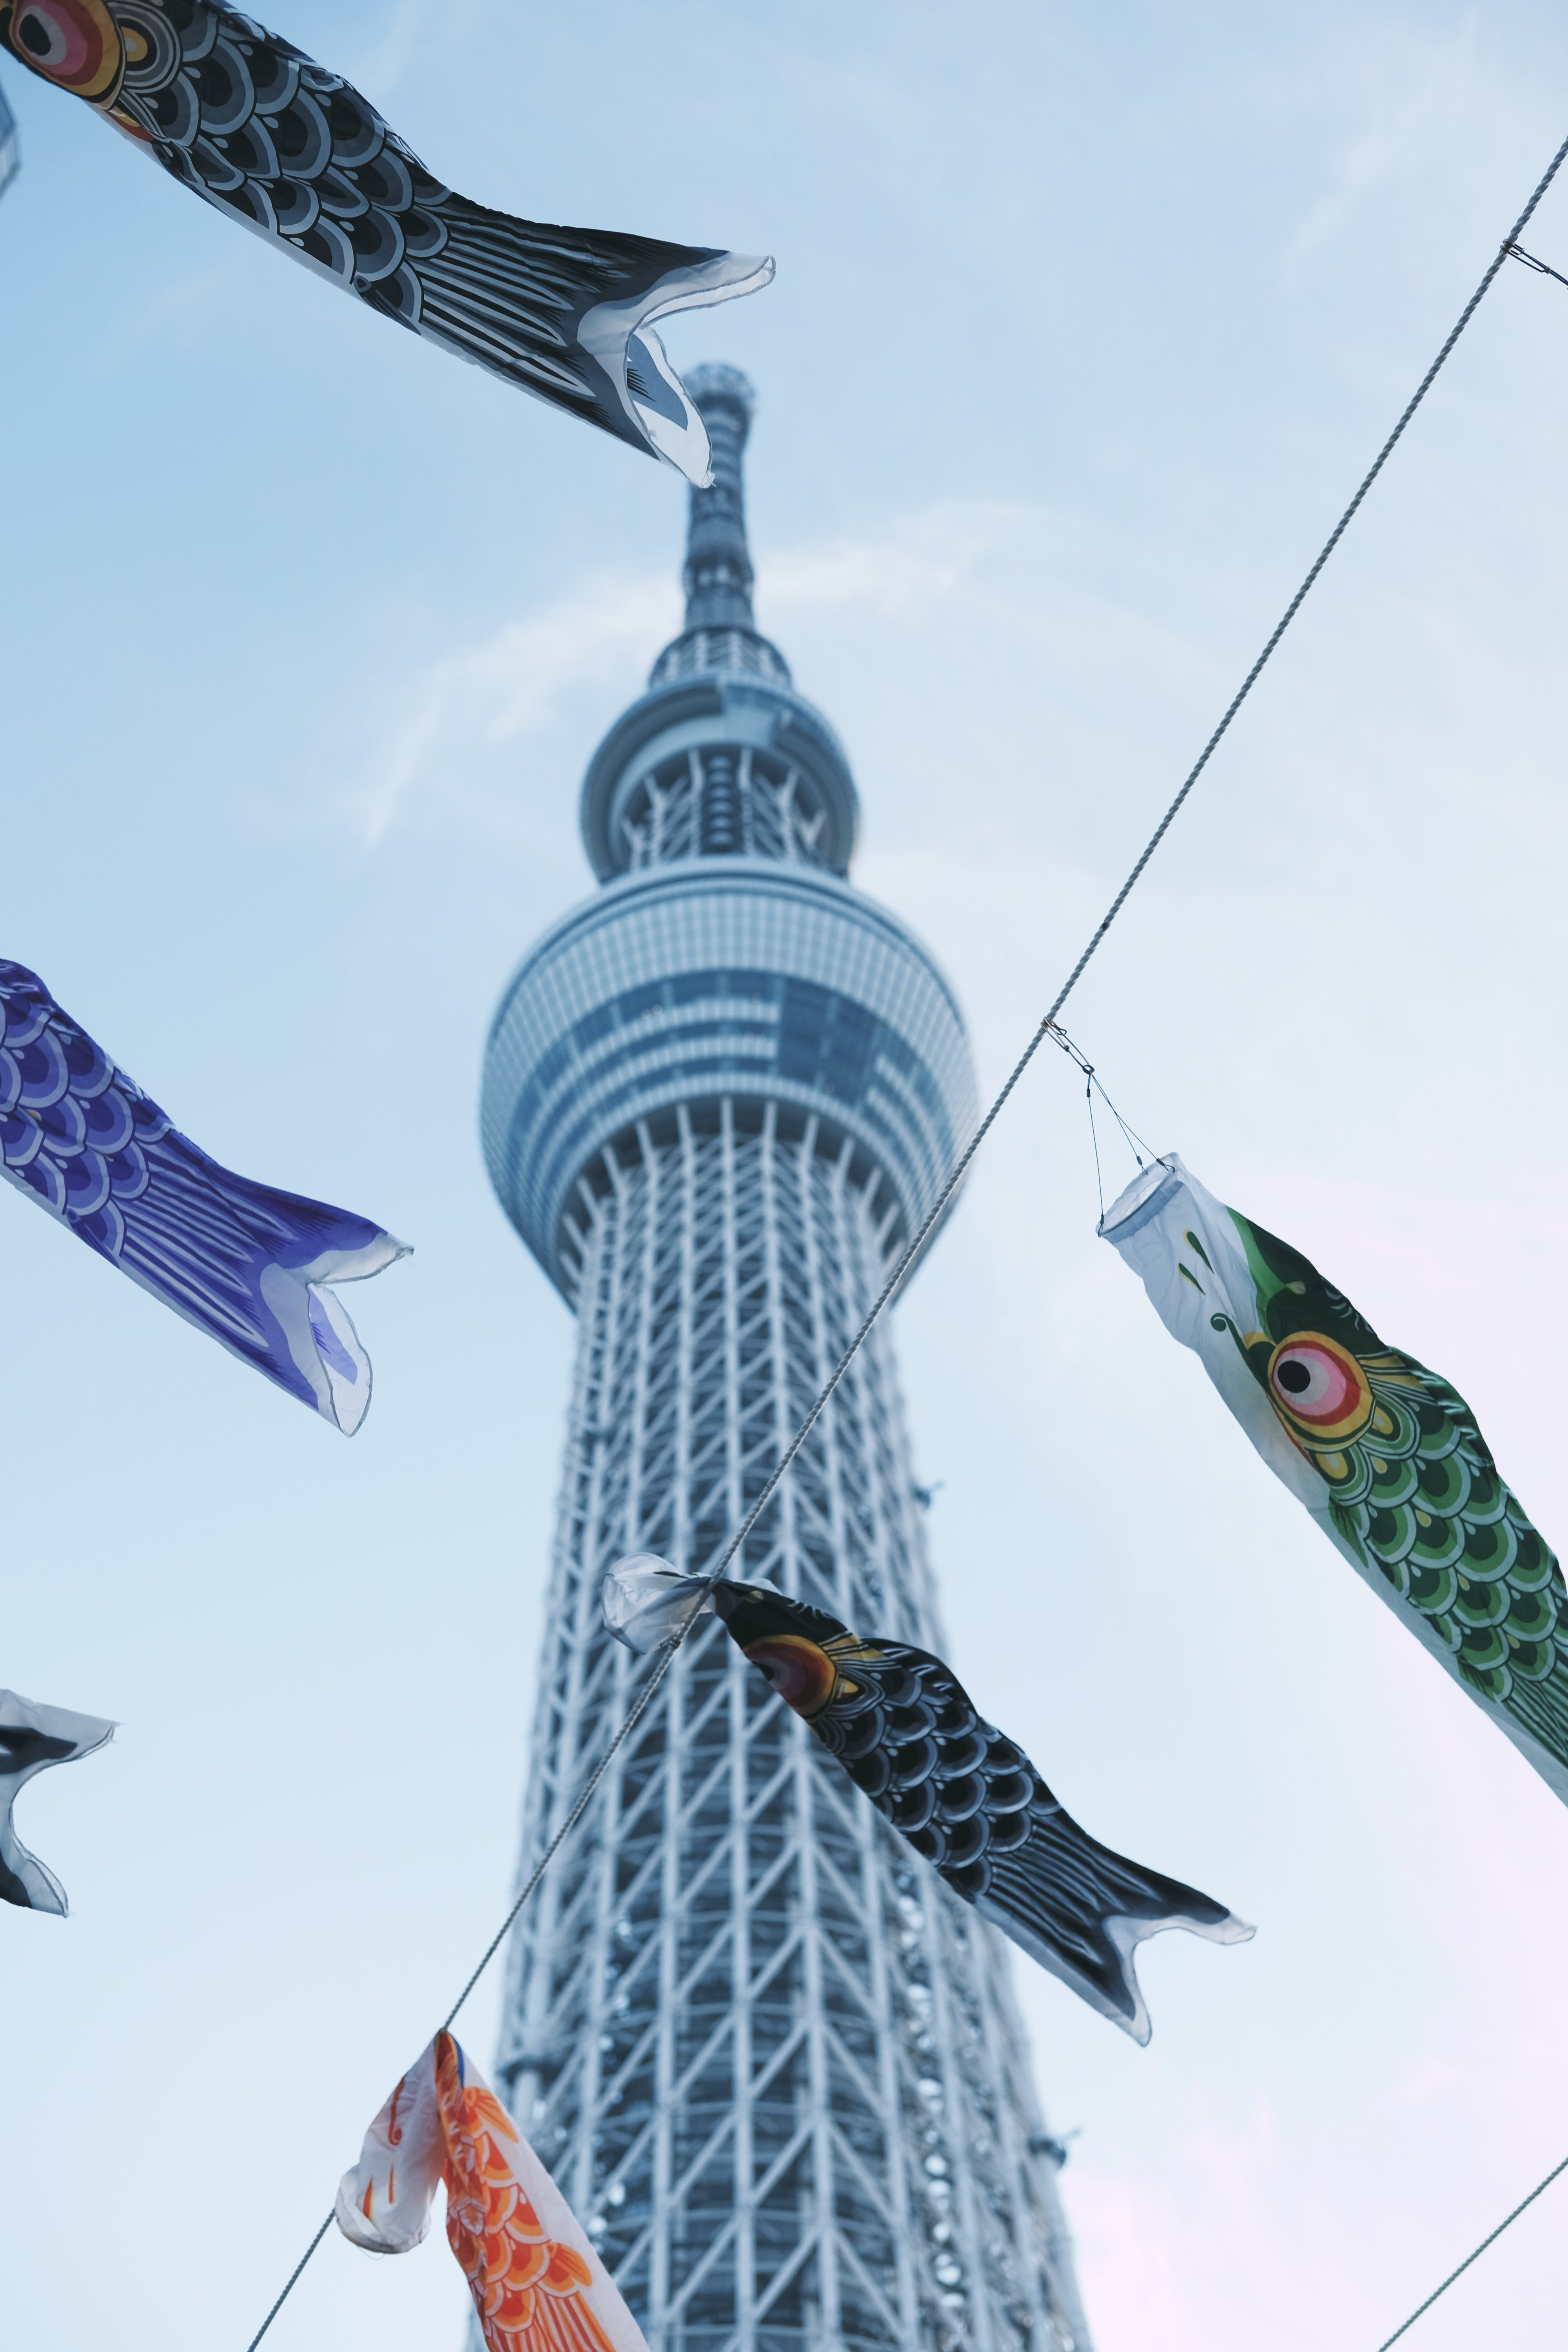 Low Angle Photography of the Tokyo Skytree